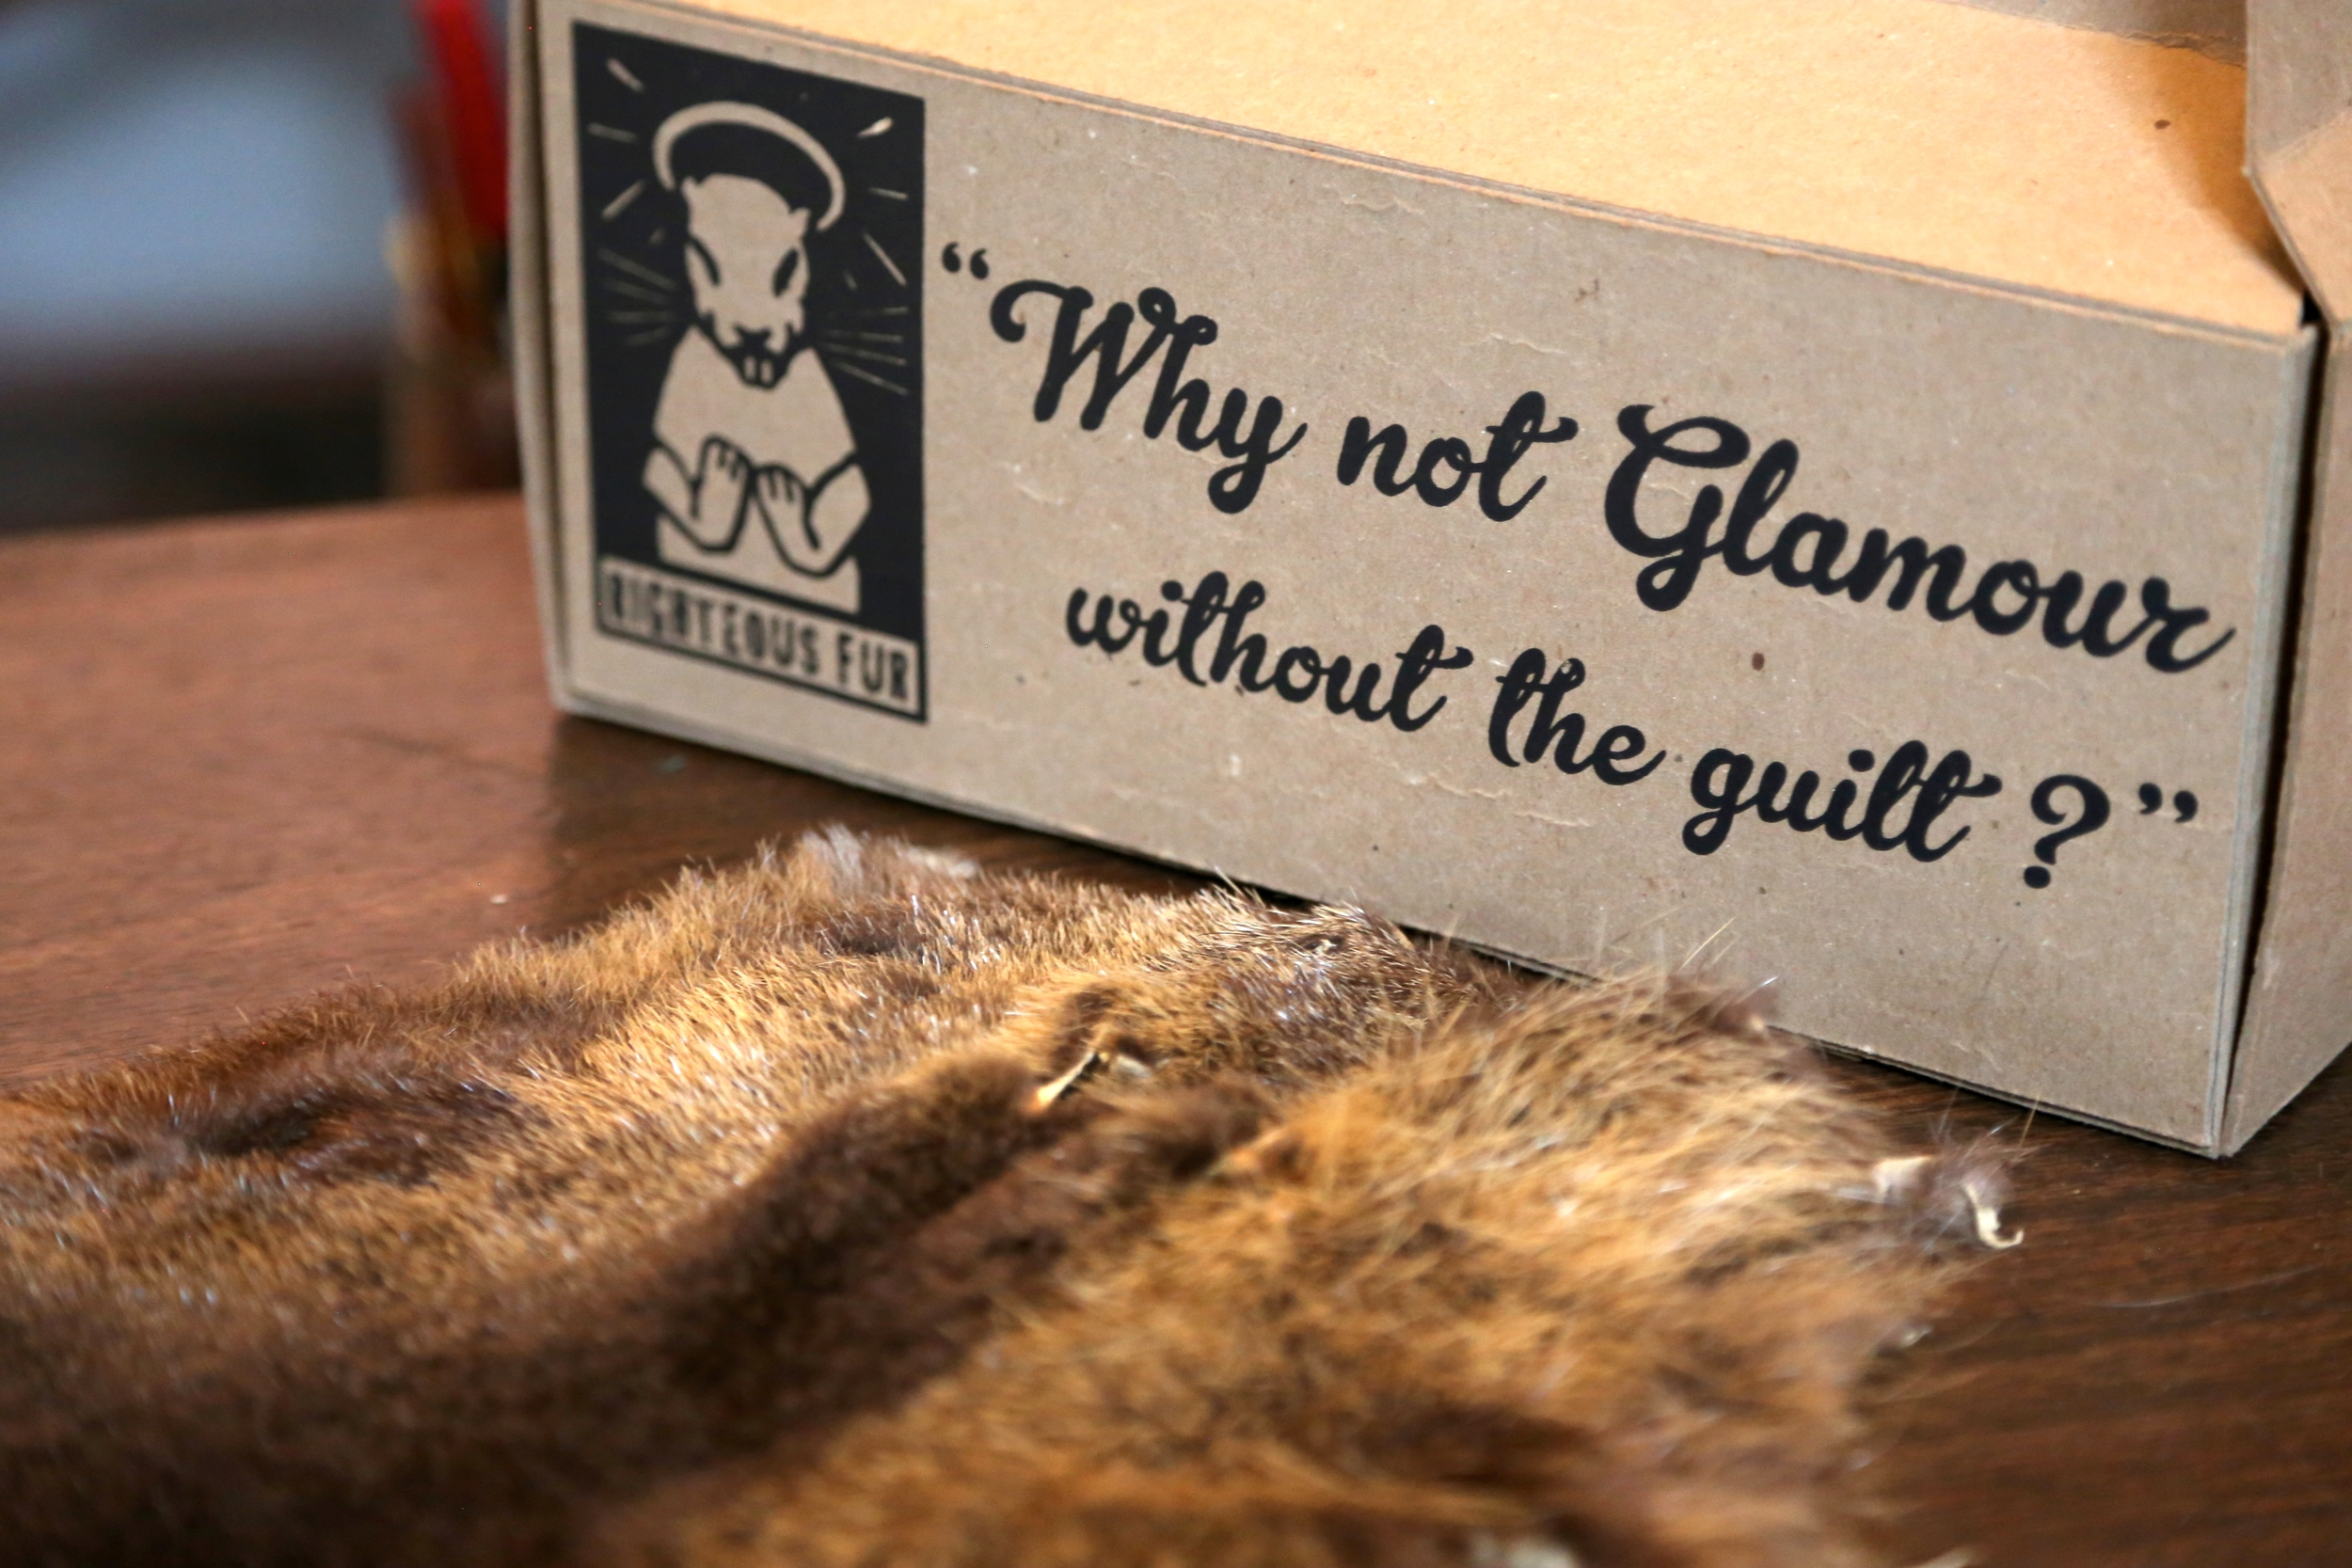 Righteous Furaims to market nutria fur as a sustainable alternative to other fur products made from native U.S. species, such as mink.